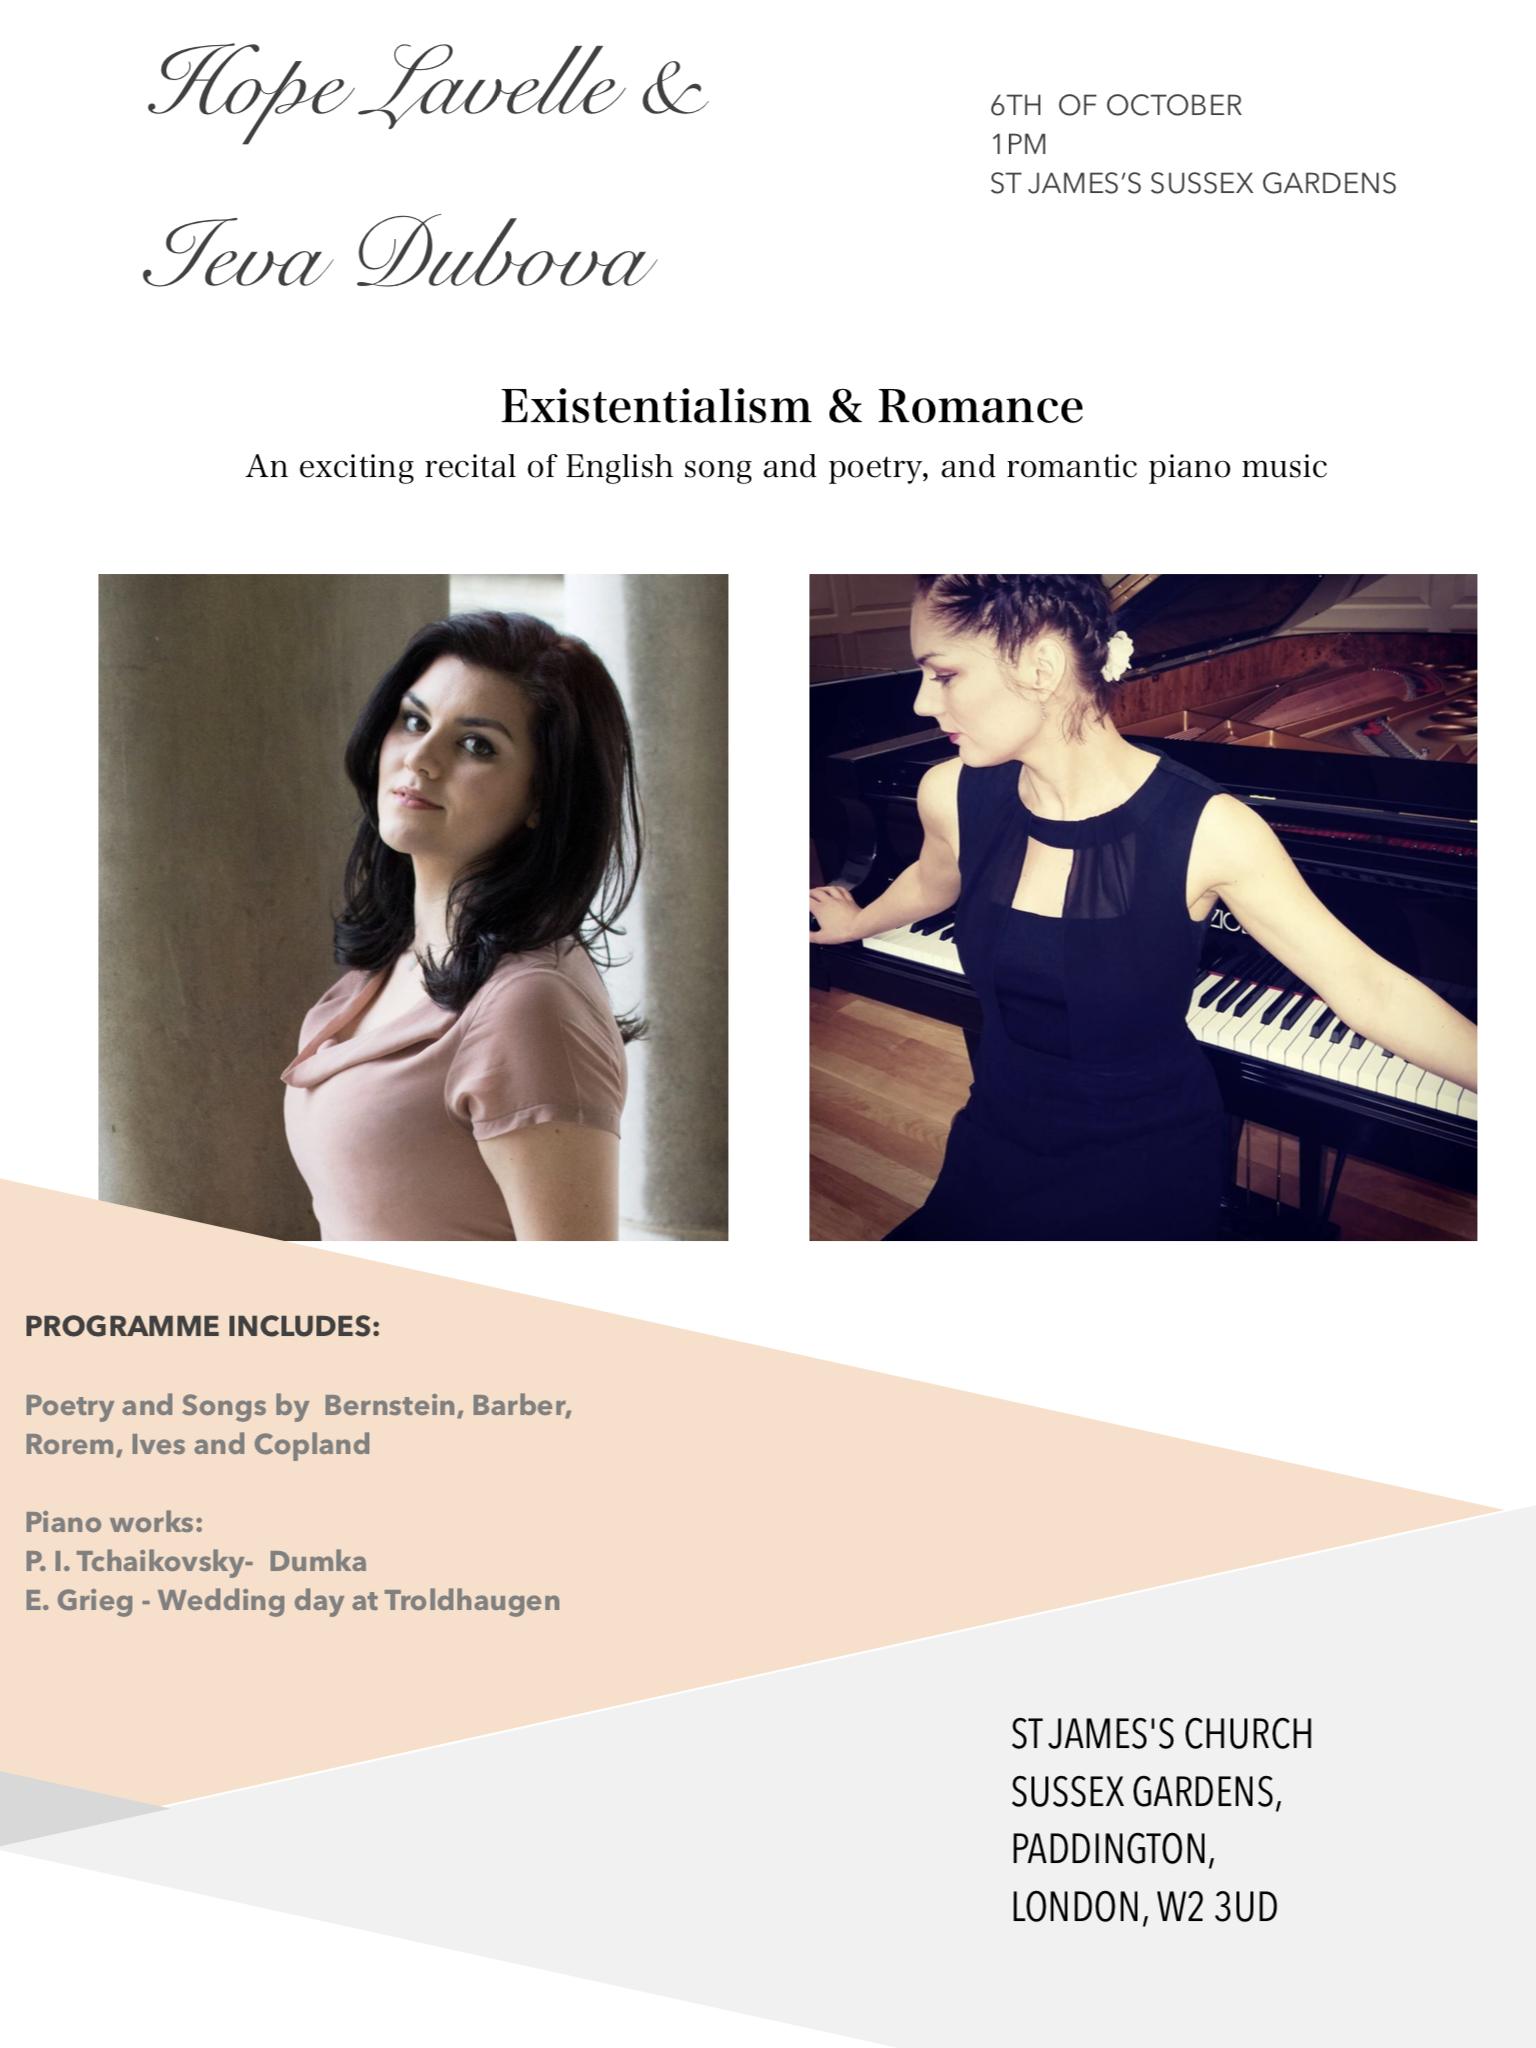 Existentialism &Romance - Latvian- born pianist Ieva Dubova and talented soprano Hope Lavellepresent a concert of English song and poetry, and romantic piano music The repertoire we performed was as follows:An exploration of 20th Century American existentialismI'm a person too -  Bernstein BernsteinI, too -  HughesSee how they love me -  Moss RoremNext to of course God America   - e.e.cummingsHowl (extract)  - GinsbergSure on this shining night -  Agee BarberThere will come soft rains  - TeasdaleSerenity -  Greenleaf Whittier IvesLife's tragedy -  Laurence DunbarSimple gifts -  Brackett CoplandPiano works:P.I. Tchaikovsky- DumkaE. Grieg - Wedding Day at Troldhaugen http://www.hopelavelle.com/